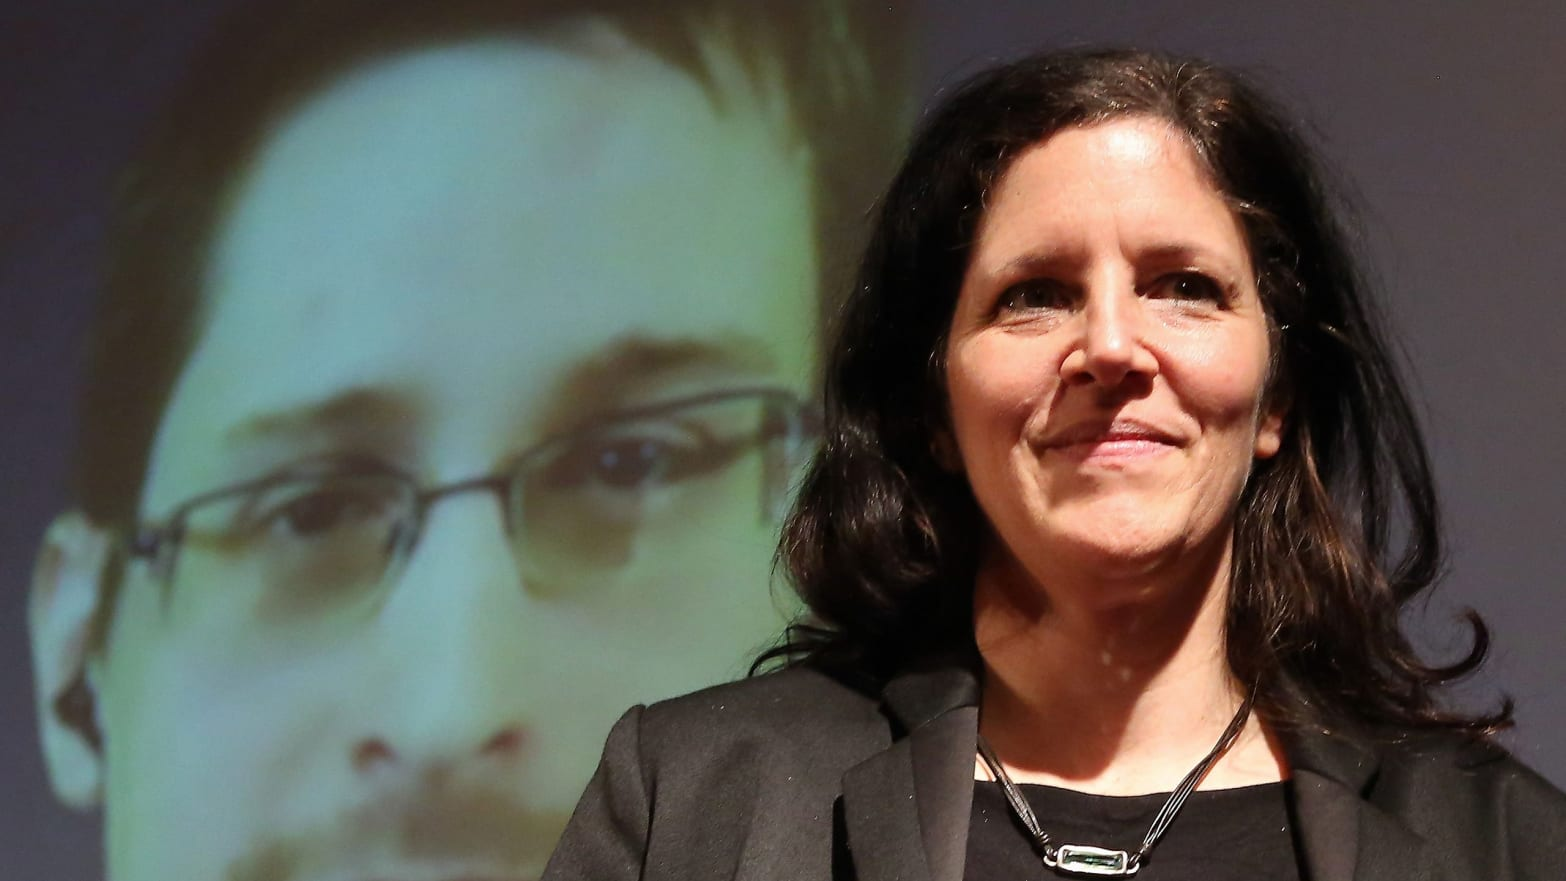 Laura Poitras, Co-Founder of The Intercept, Barred From Company Meeting After Snowden Archive Shutdown